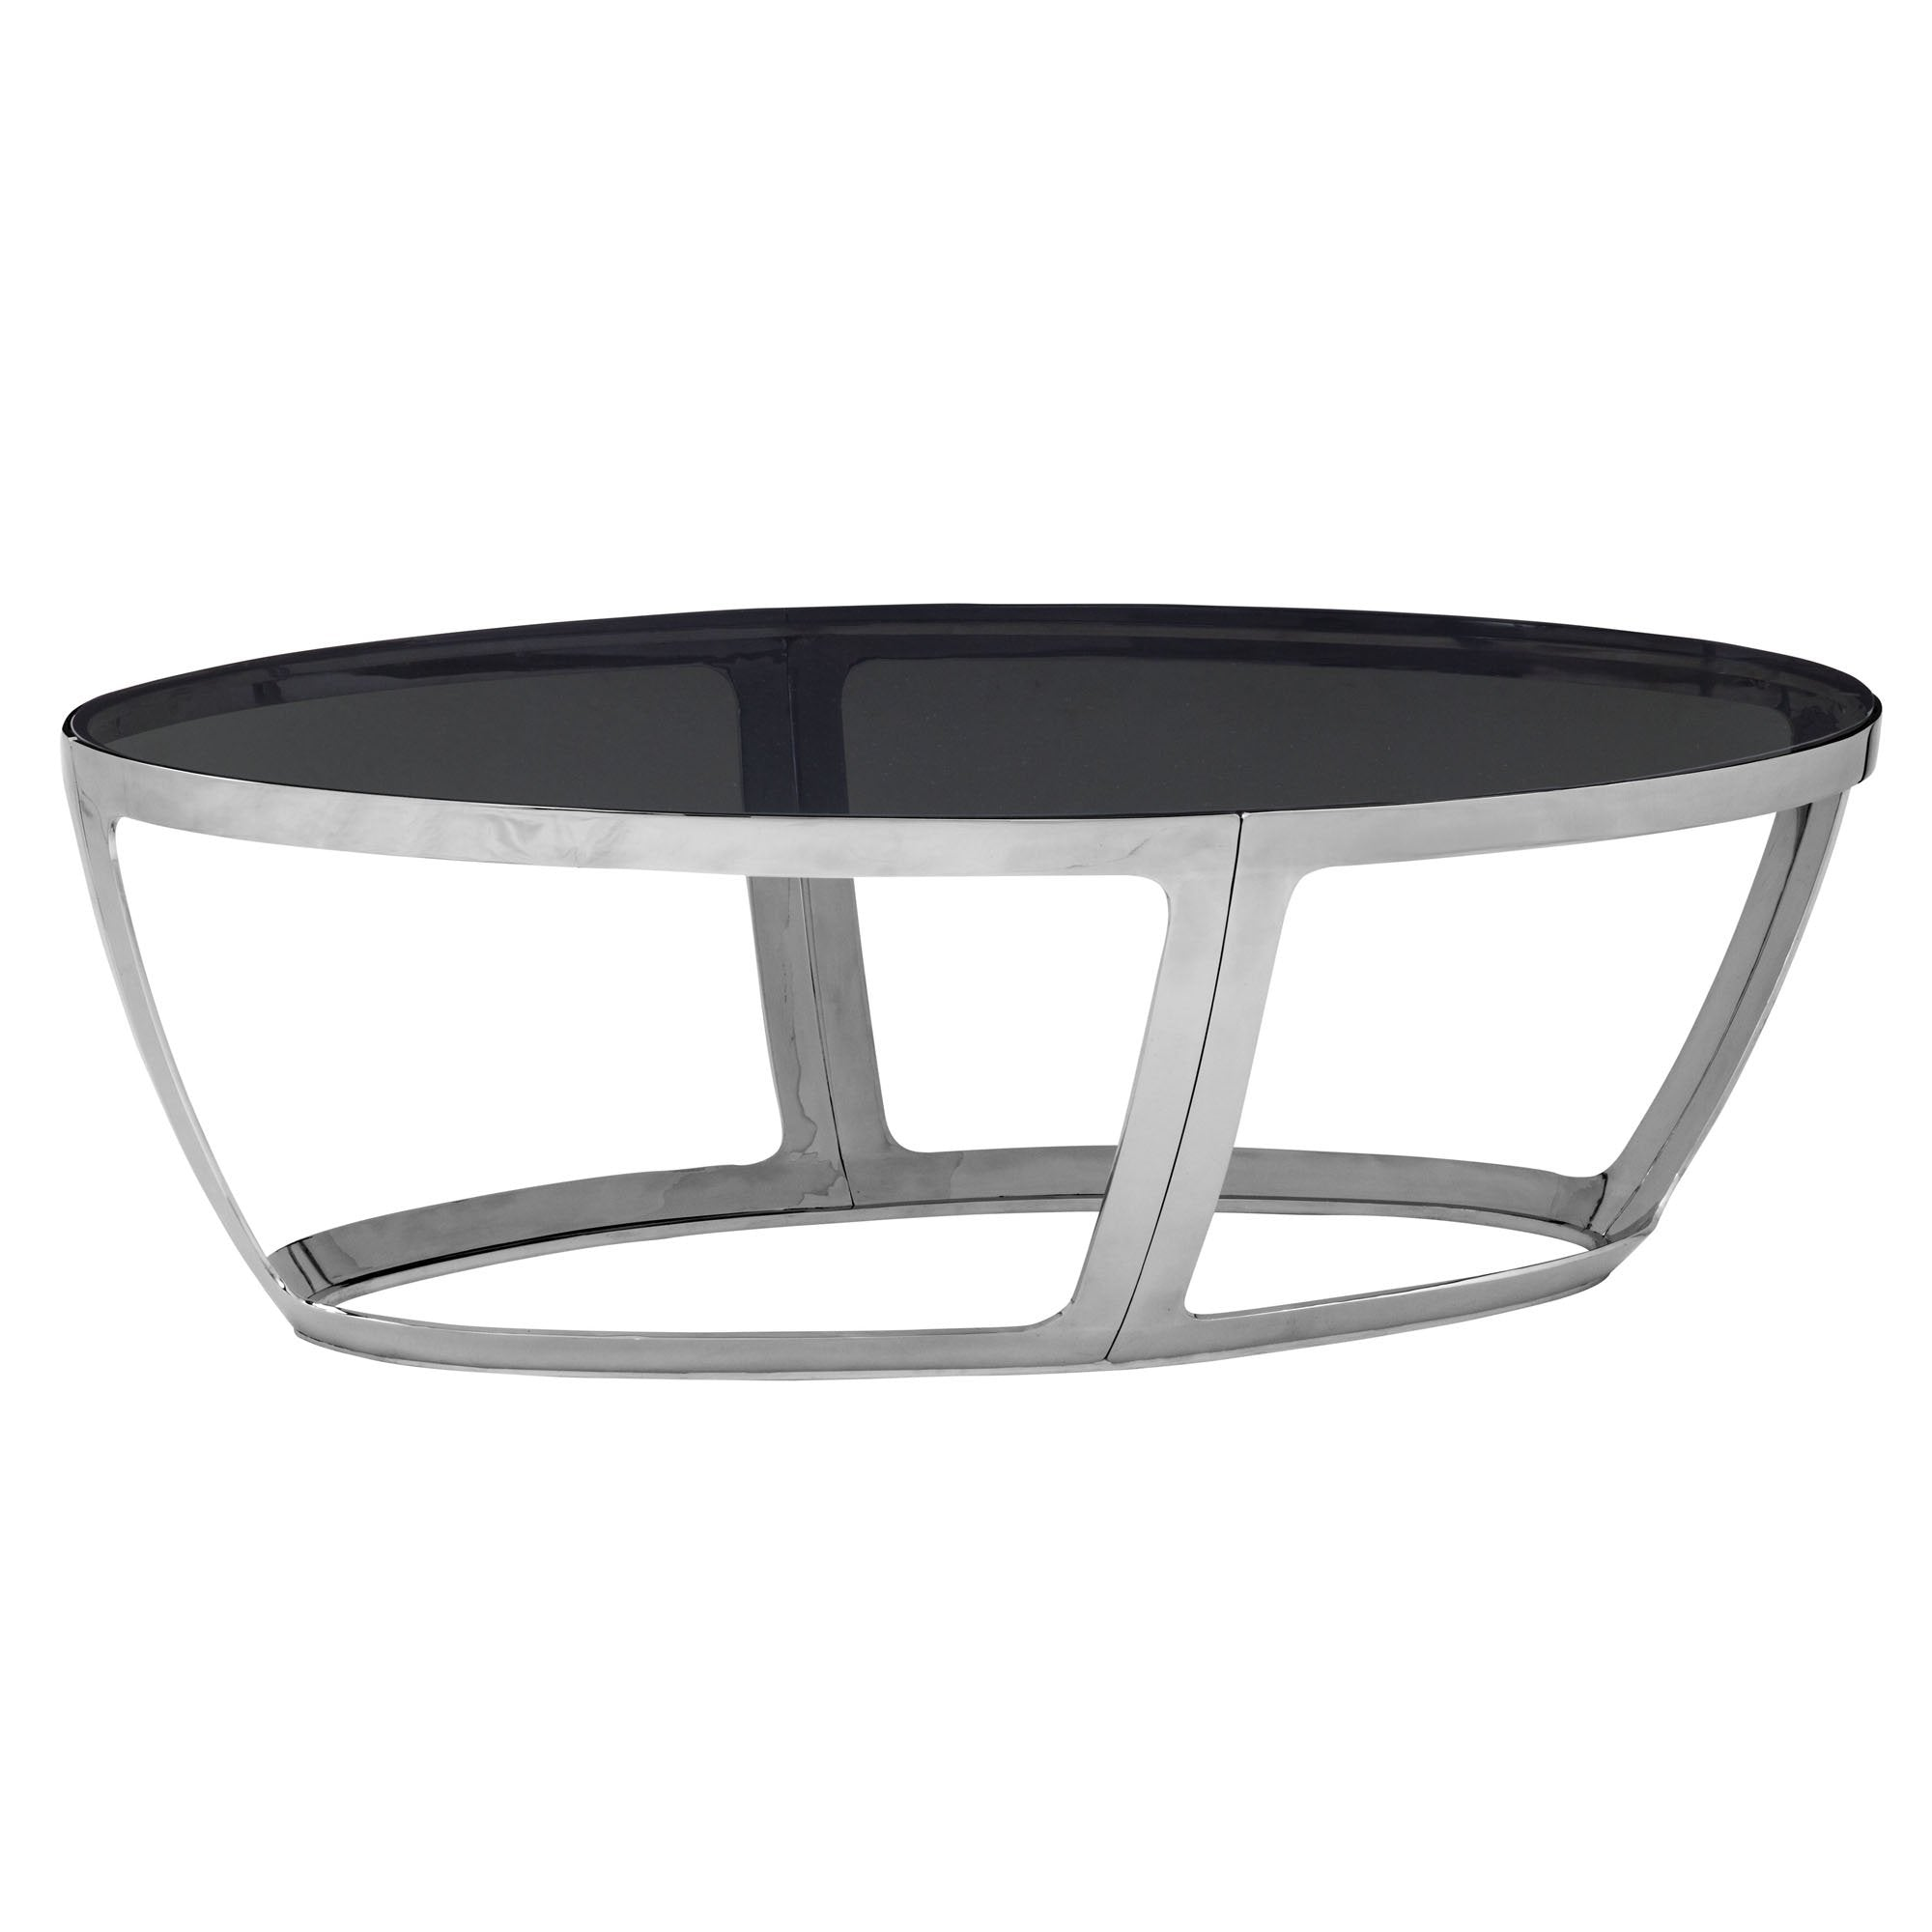 Alyssa Oval Cocktail Table with smoked glass